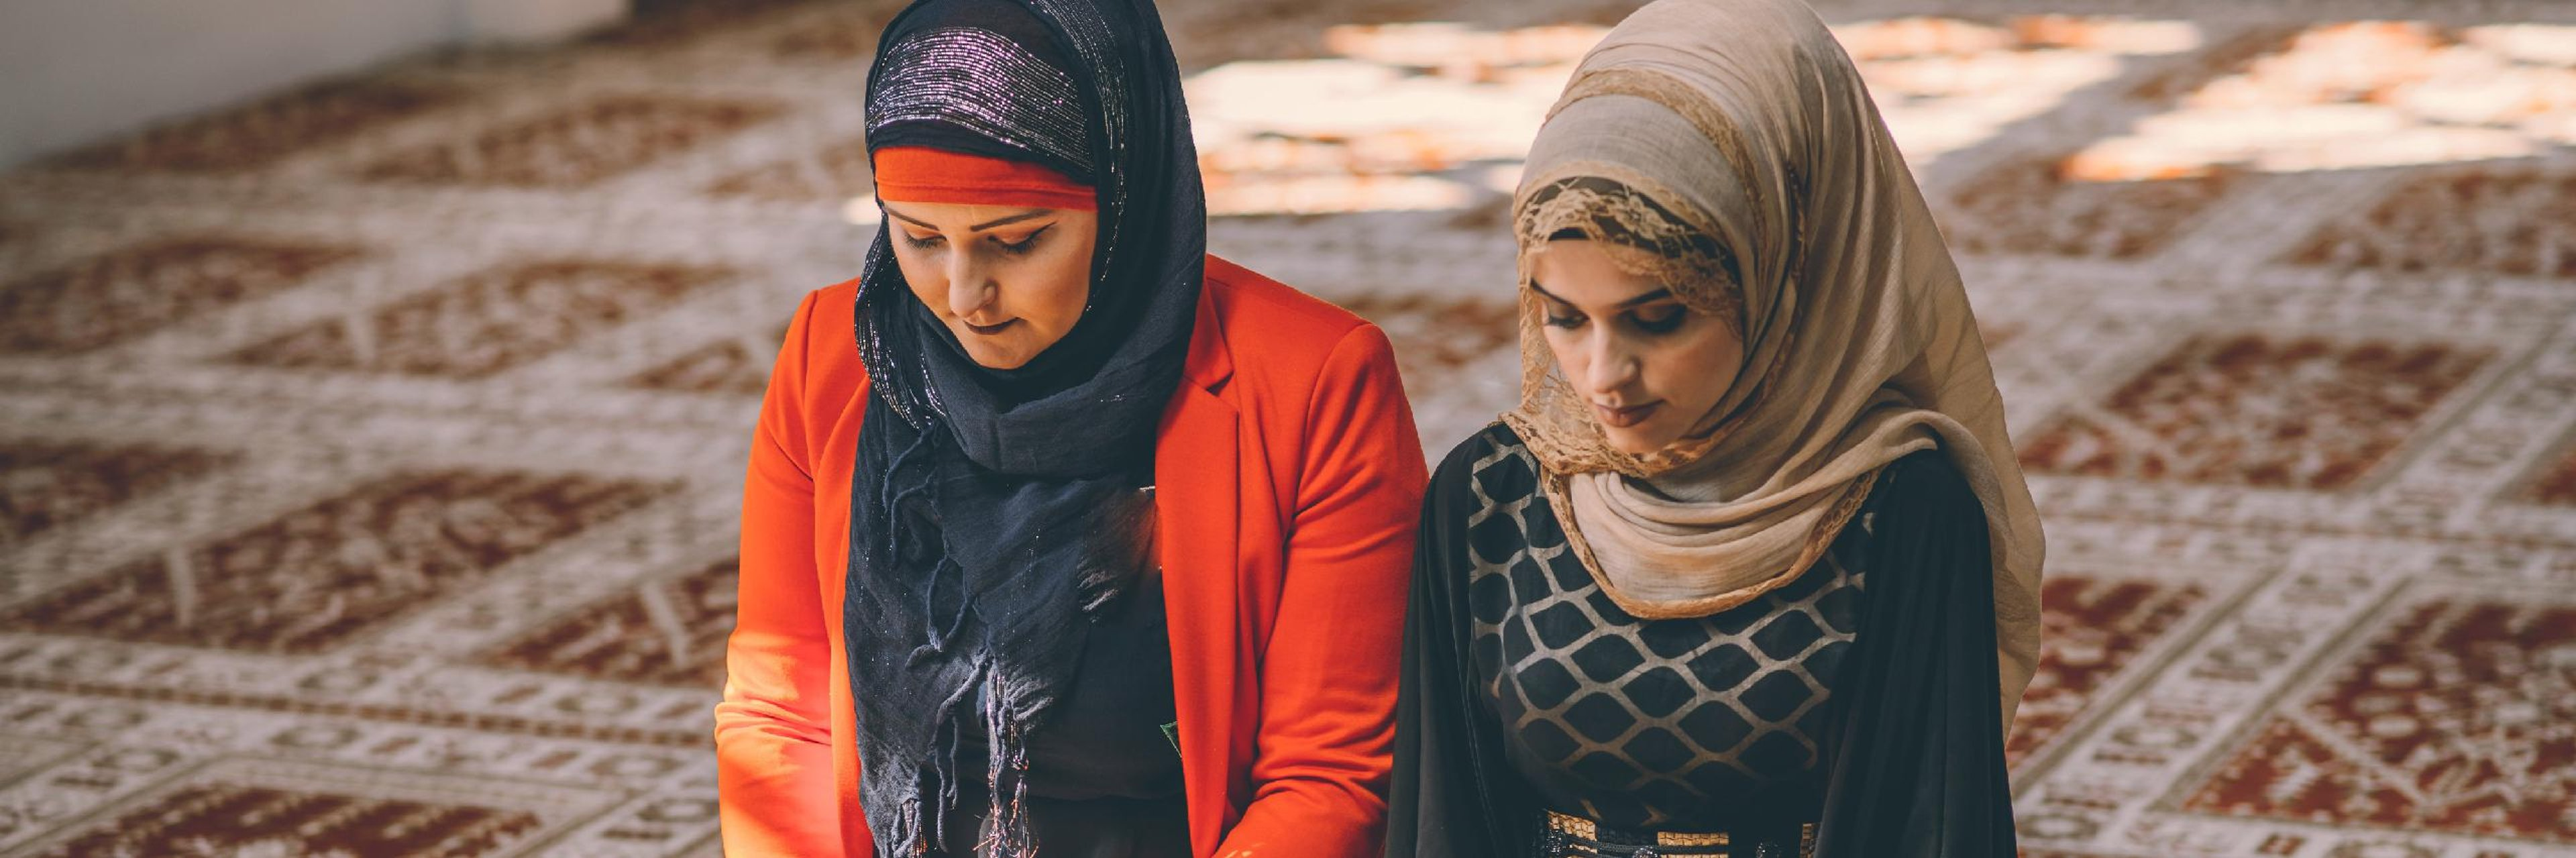 Is Feminism the Problem? Why Ideological Bandwagons Fail Islam